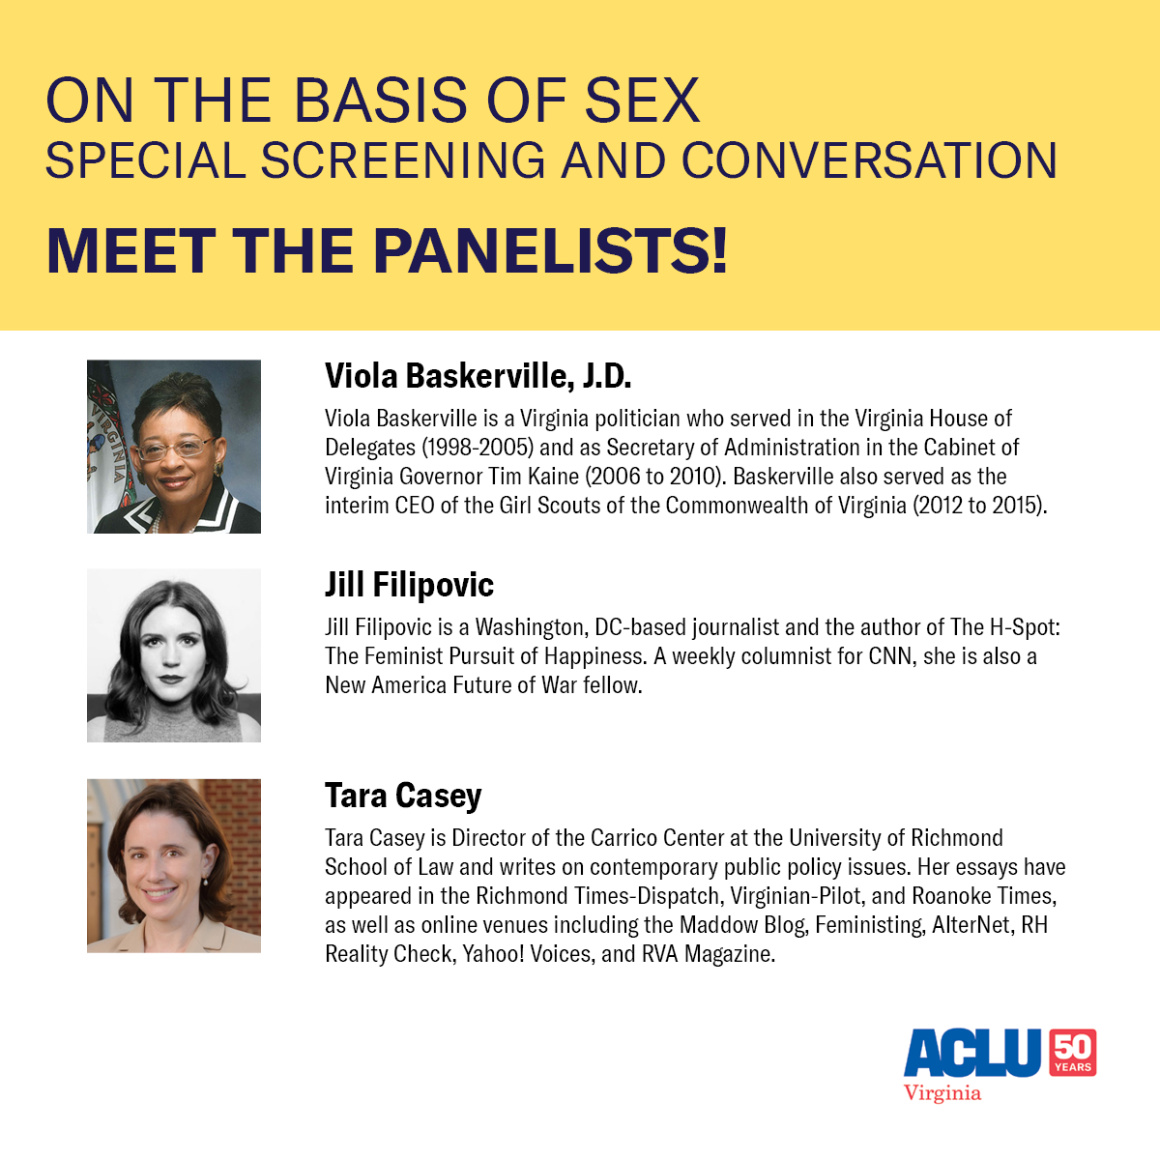 Bios and profile pictures of our panelists for the conversation following On The Basis of Sex movie screening